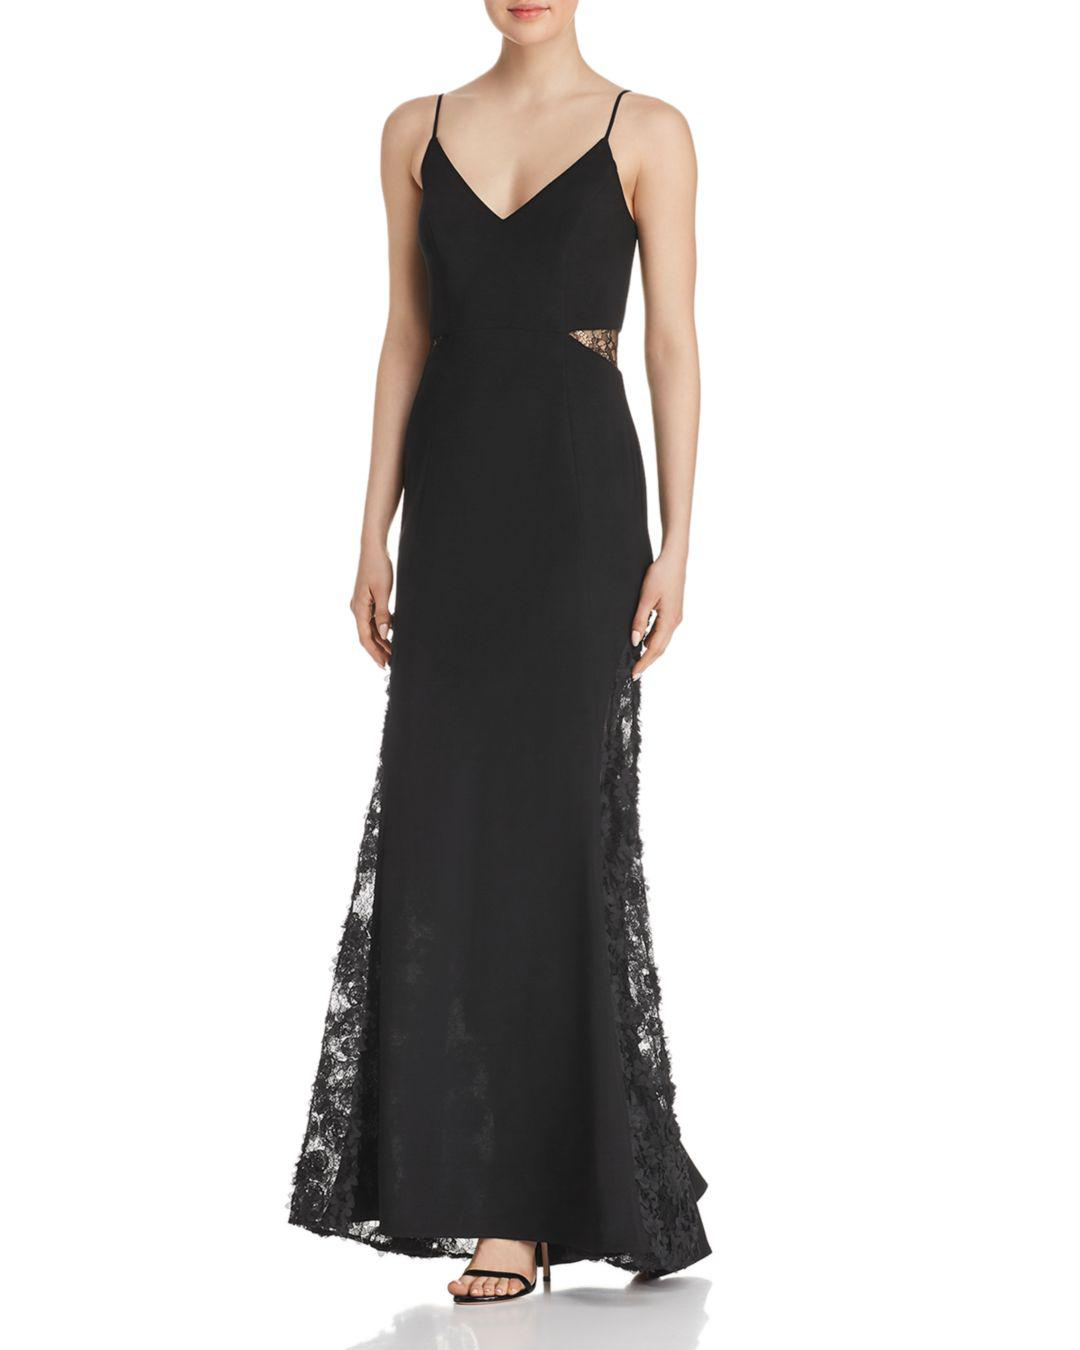 352e8fe2e802 Betsy & Adam Lace-inset Gown in Black - Lyst